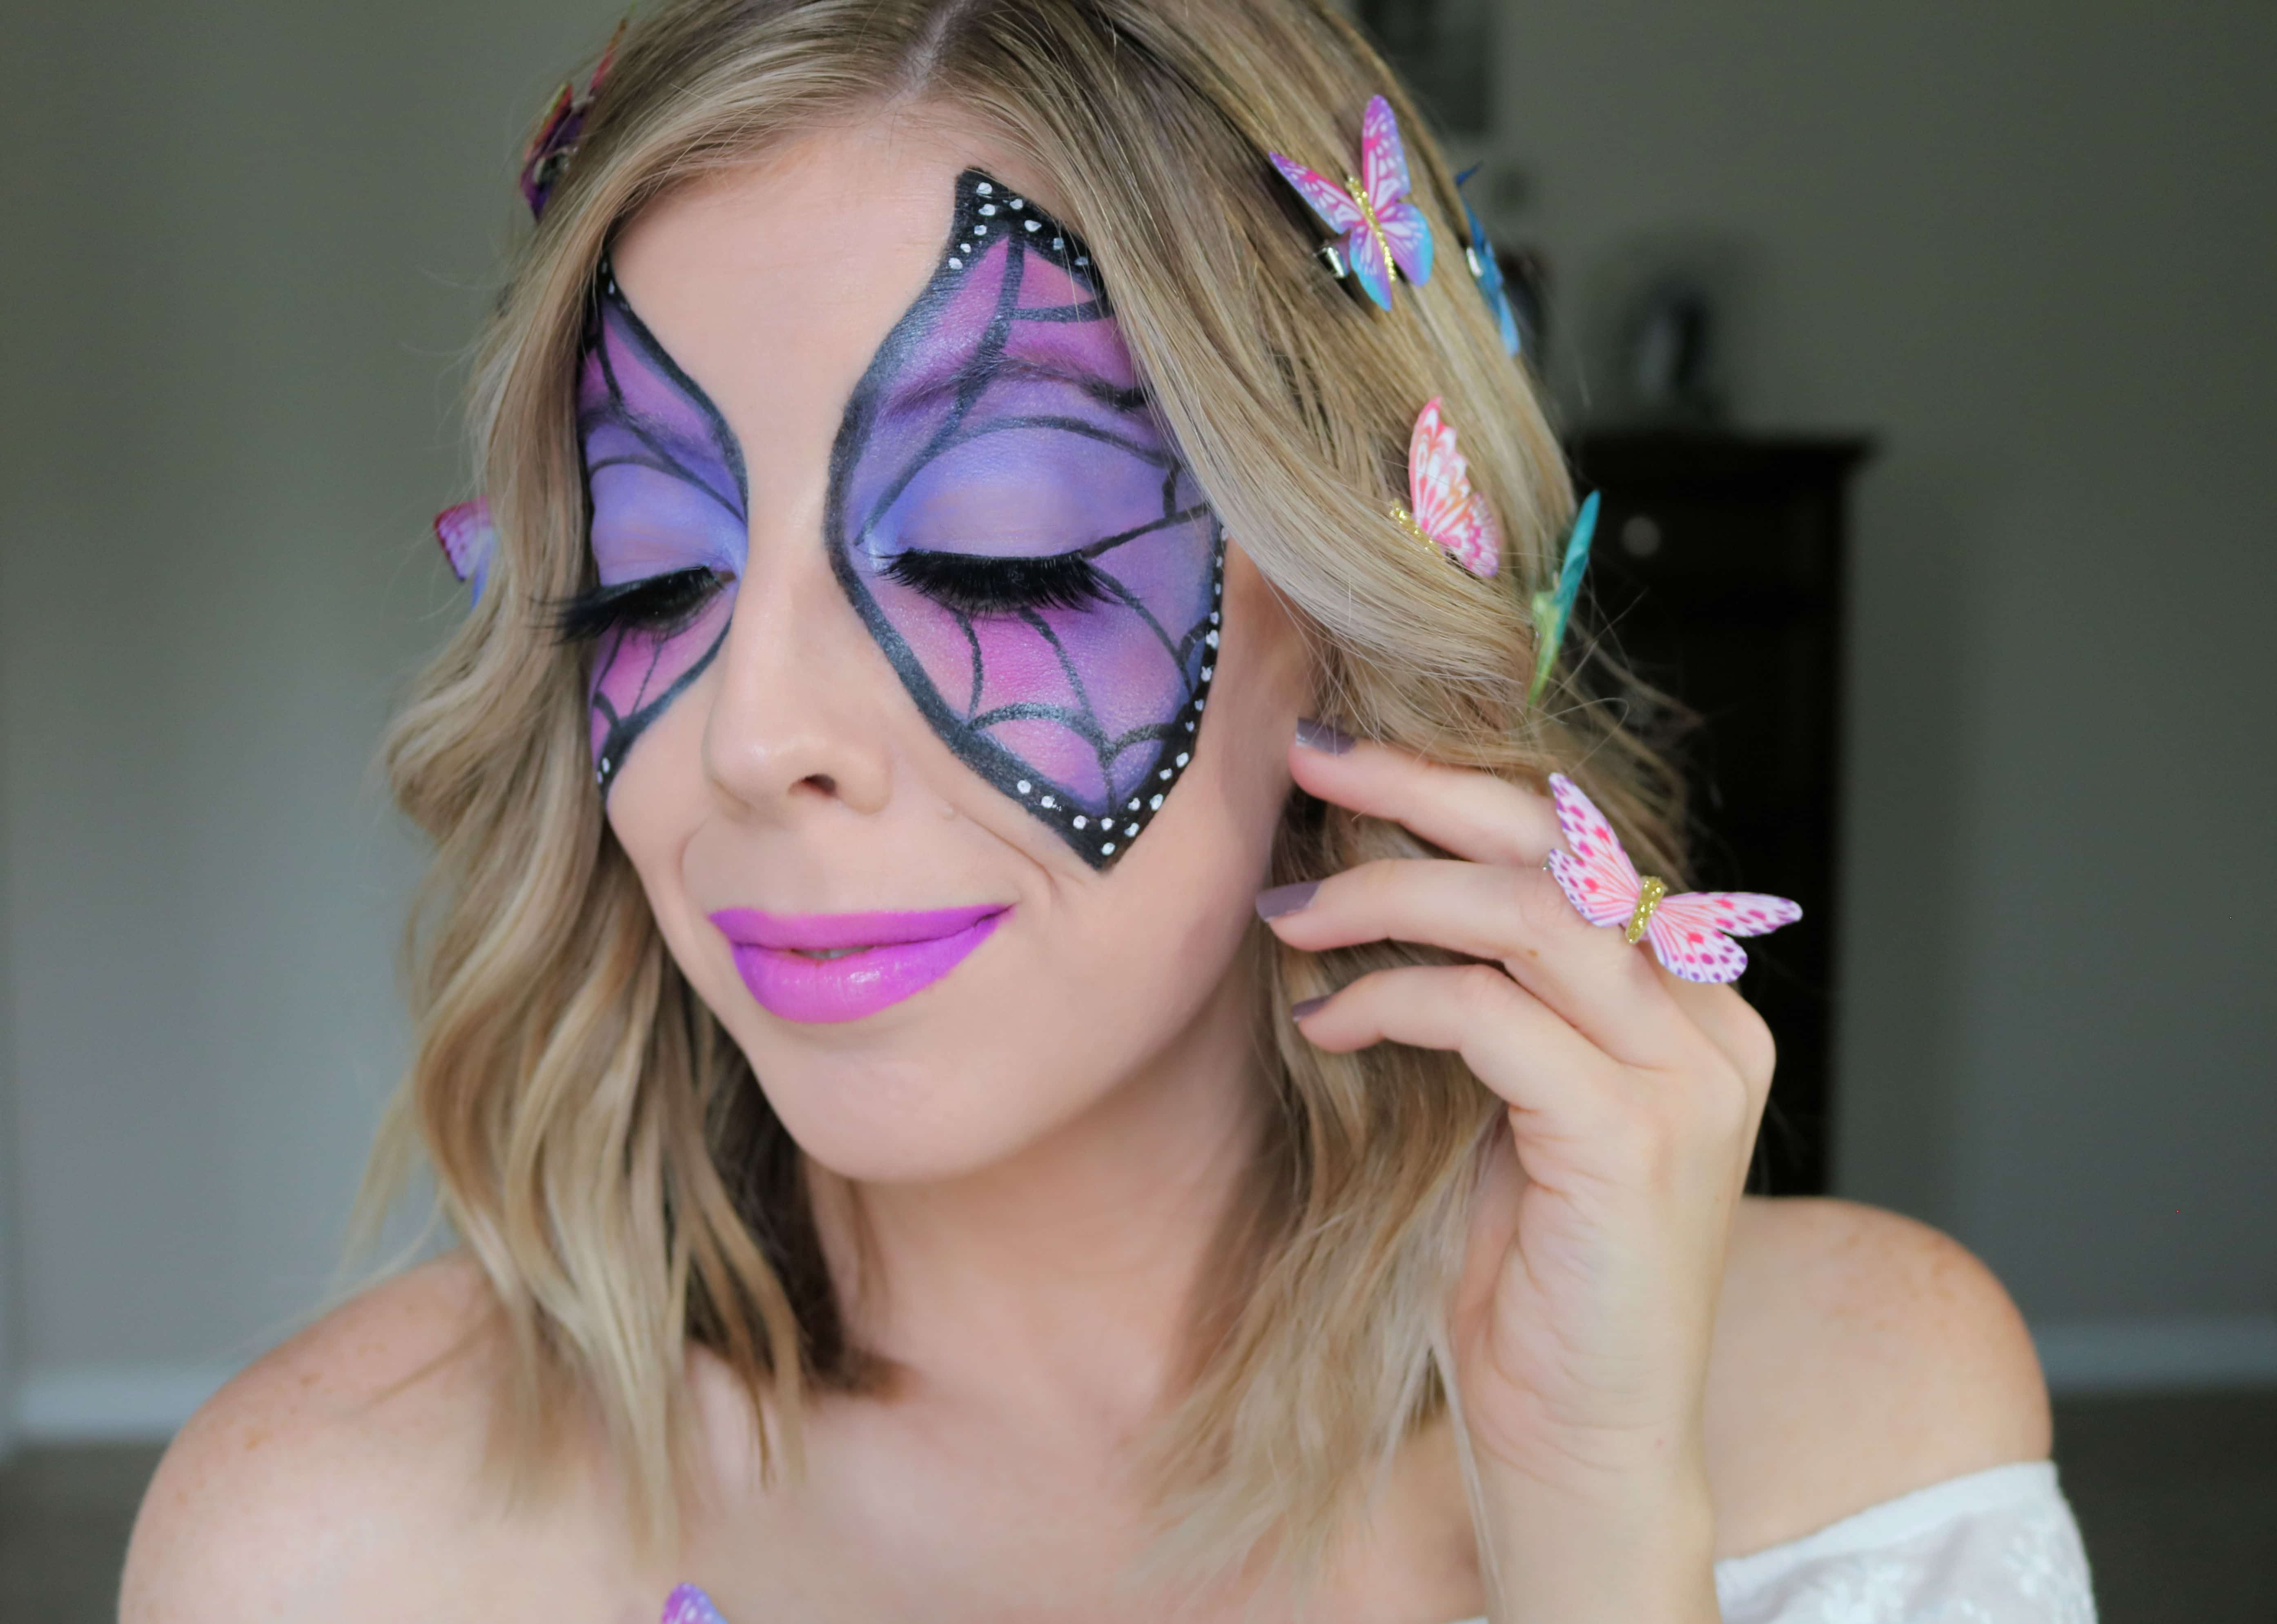 This butterfly makeup look for Halloween is so colorful and fun and perfect if you're looking for a girly halloween costume idea! Get the look with my easy halloween makeup tutorial! #butterflymakeup #halloweenmakeup #halloweentutorial #prettyhalloween